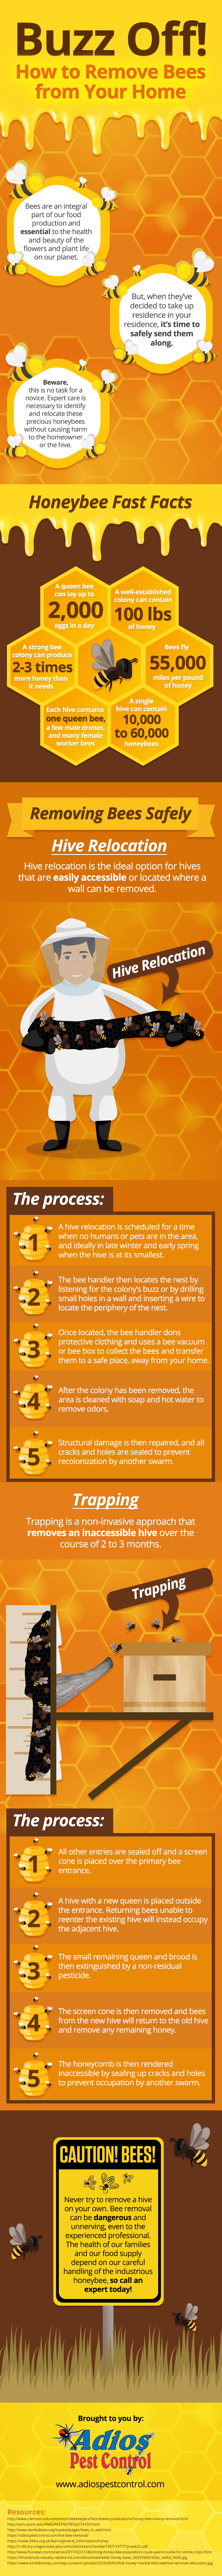 infographic sharing how to remove bees from your home